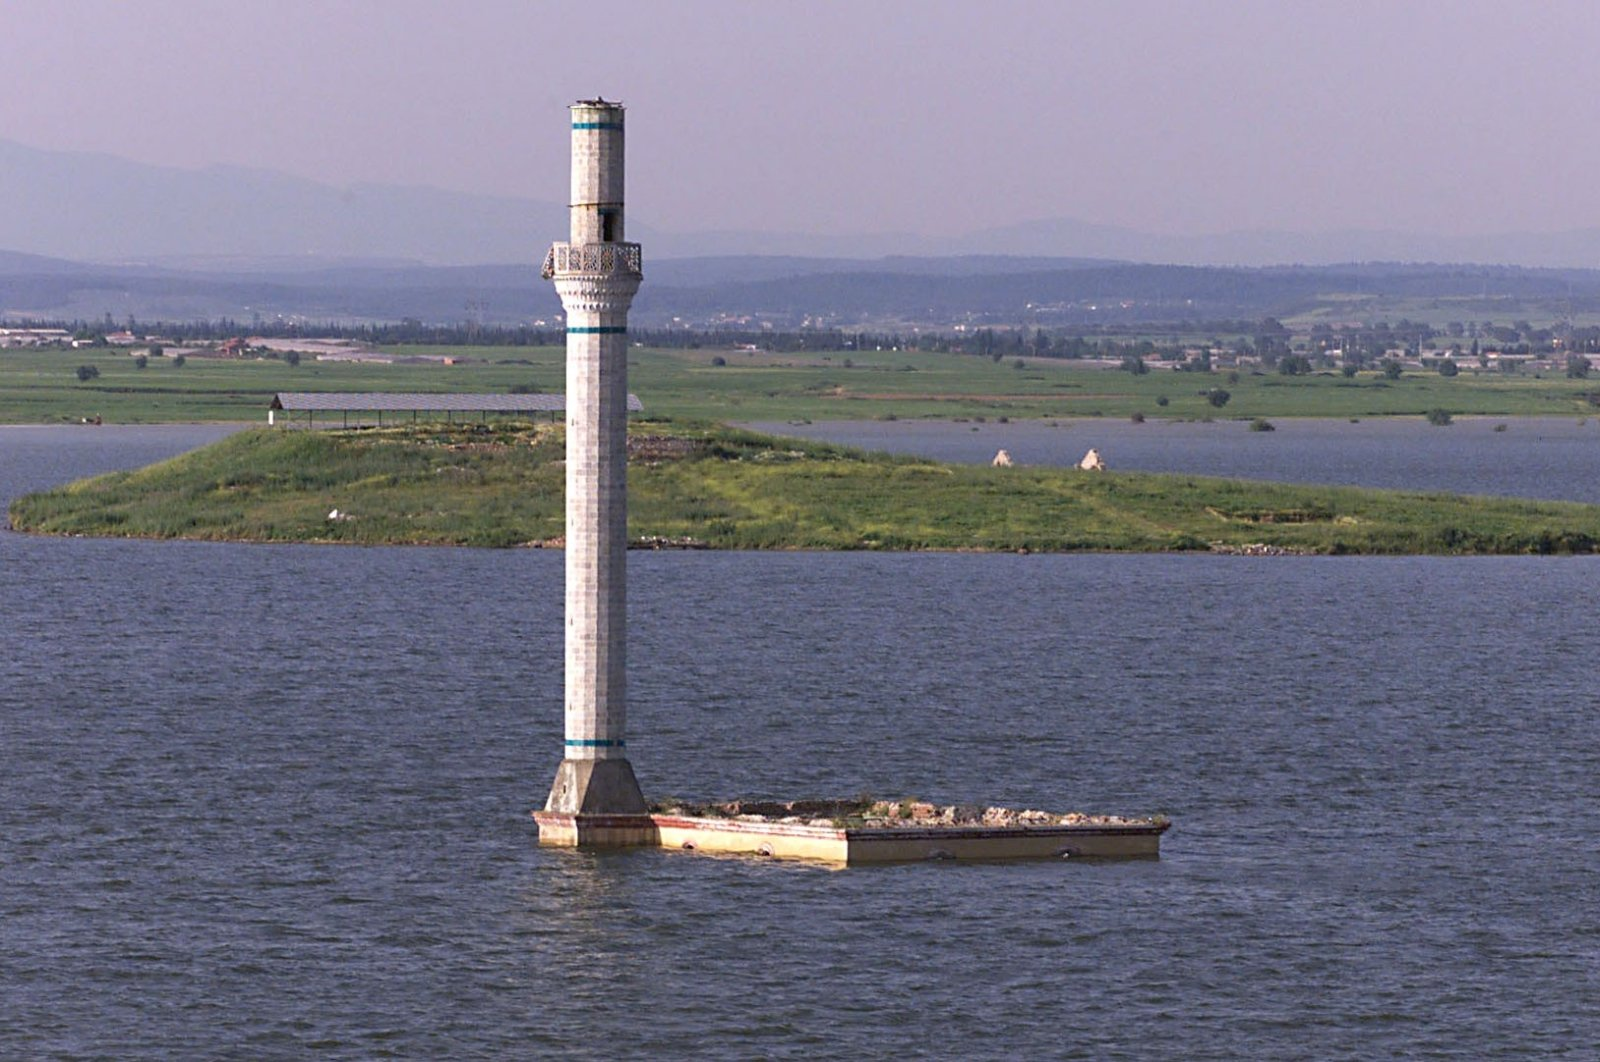 The minaret of an old mosque submerged under the Tahtalı Dam reservoir emerges after water levels receded, in Izmir, Turkey, Nov. 26, 2020. (IHA Photo)